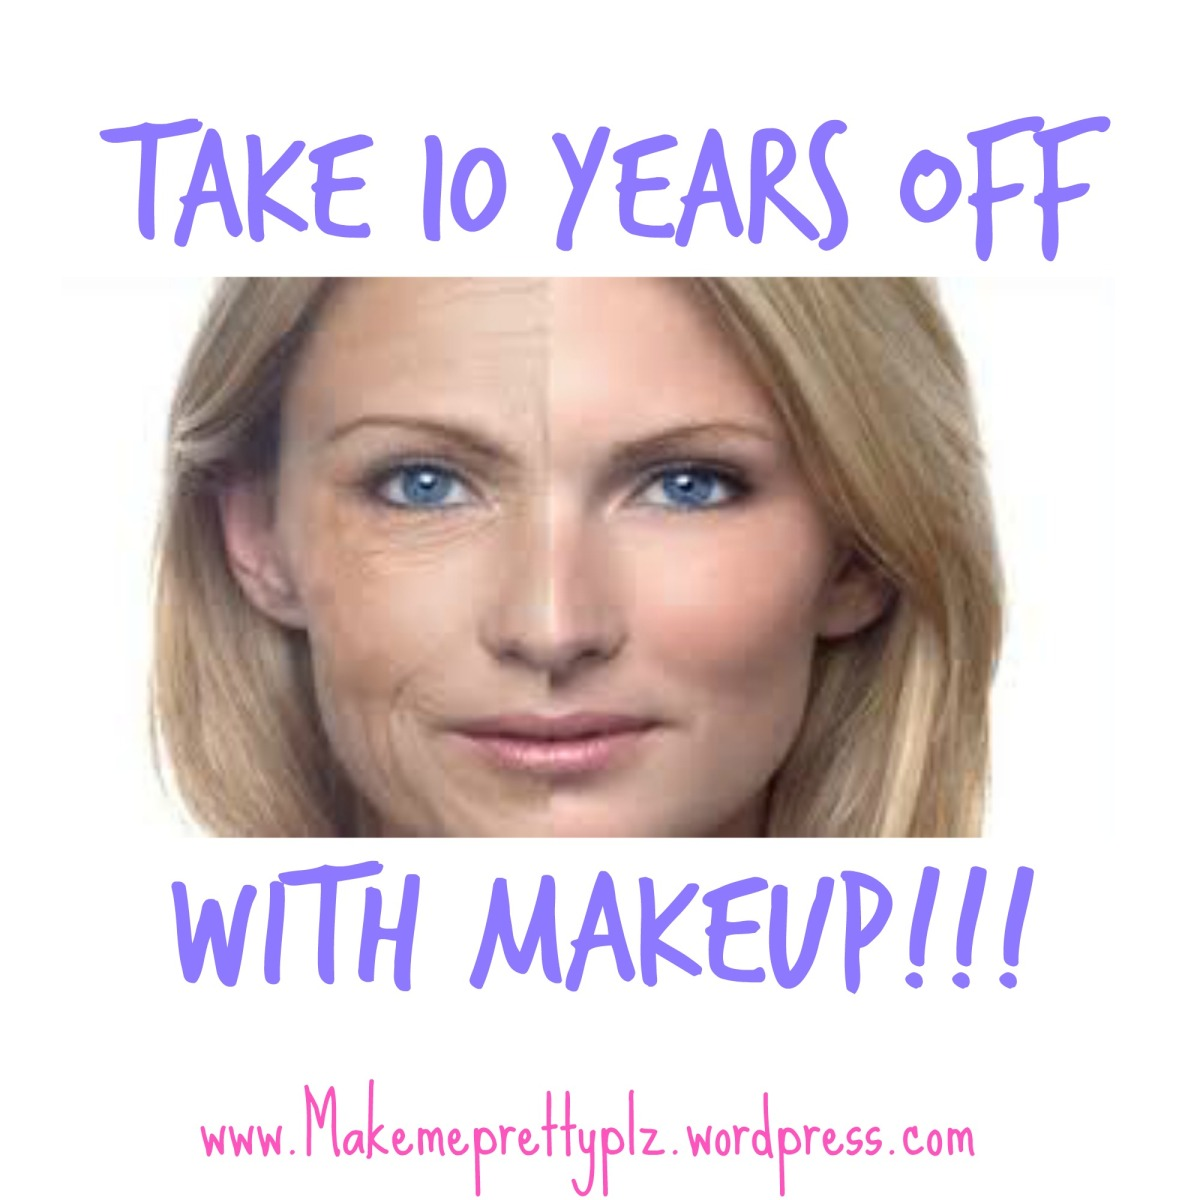 Take Off Ten Years With Makeup!!!